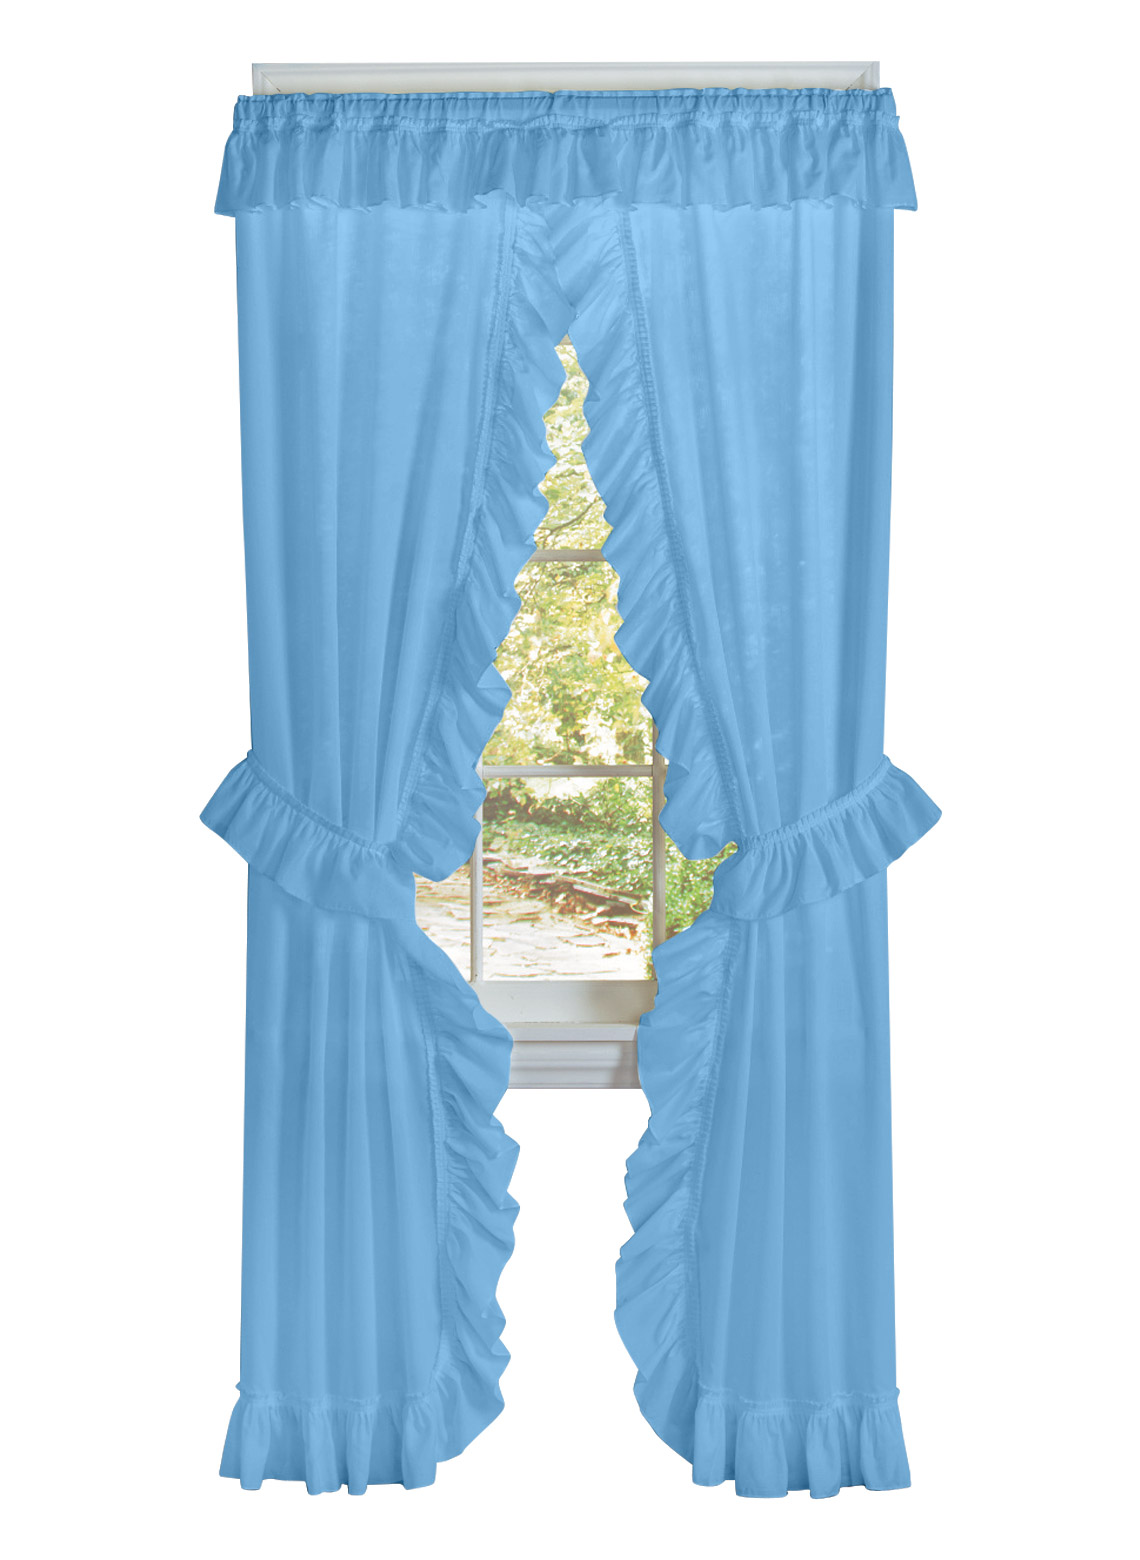 Window Treatments | Decorative Drapes and Curtains ...